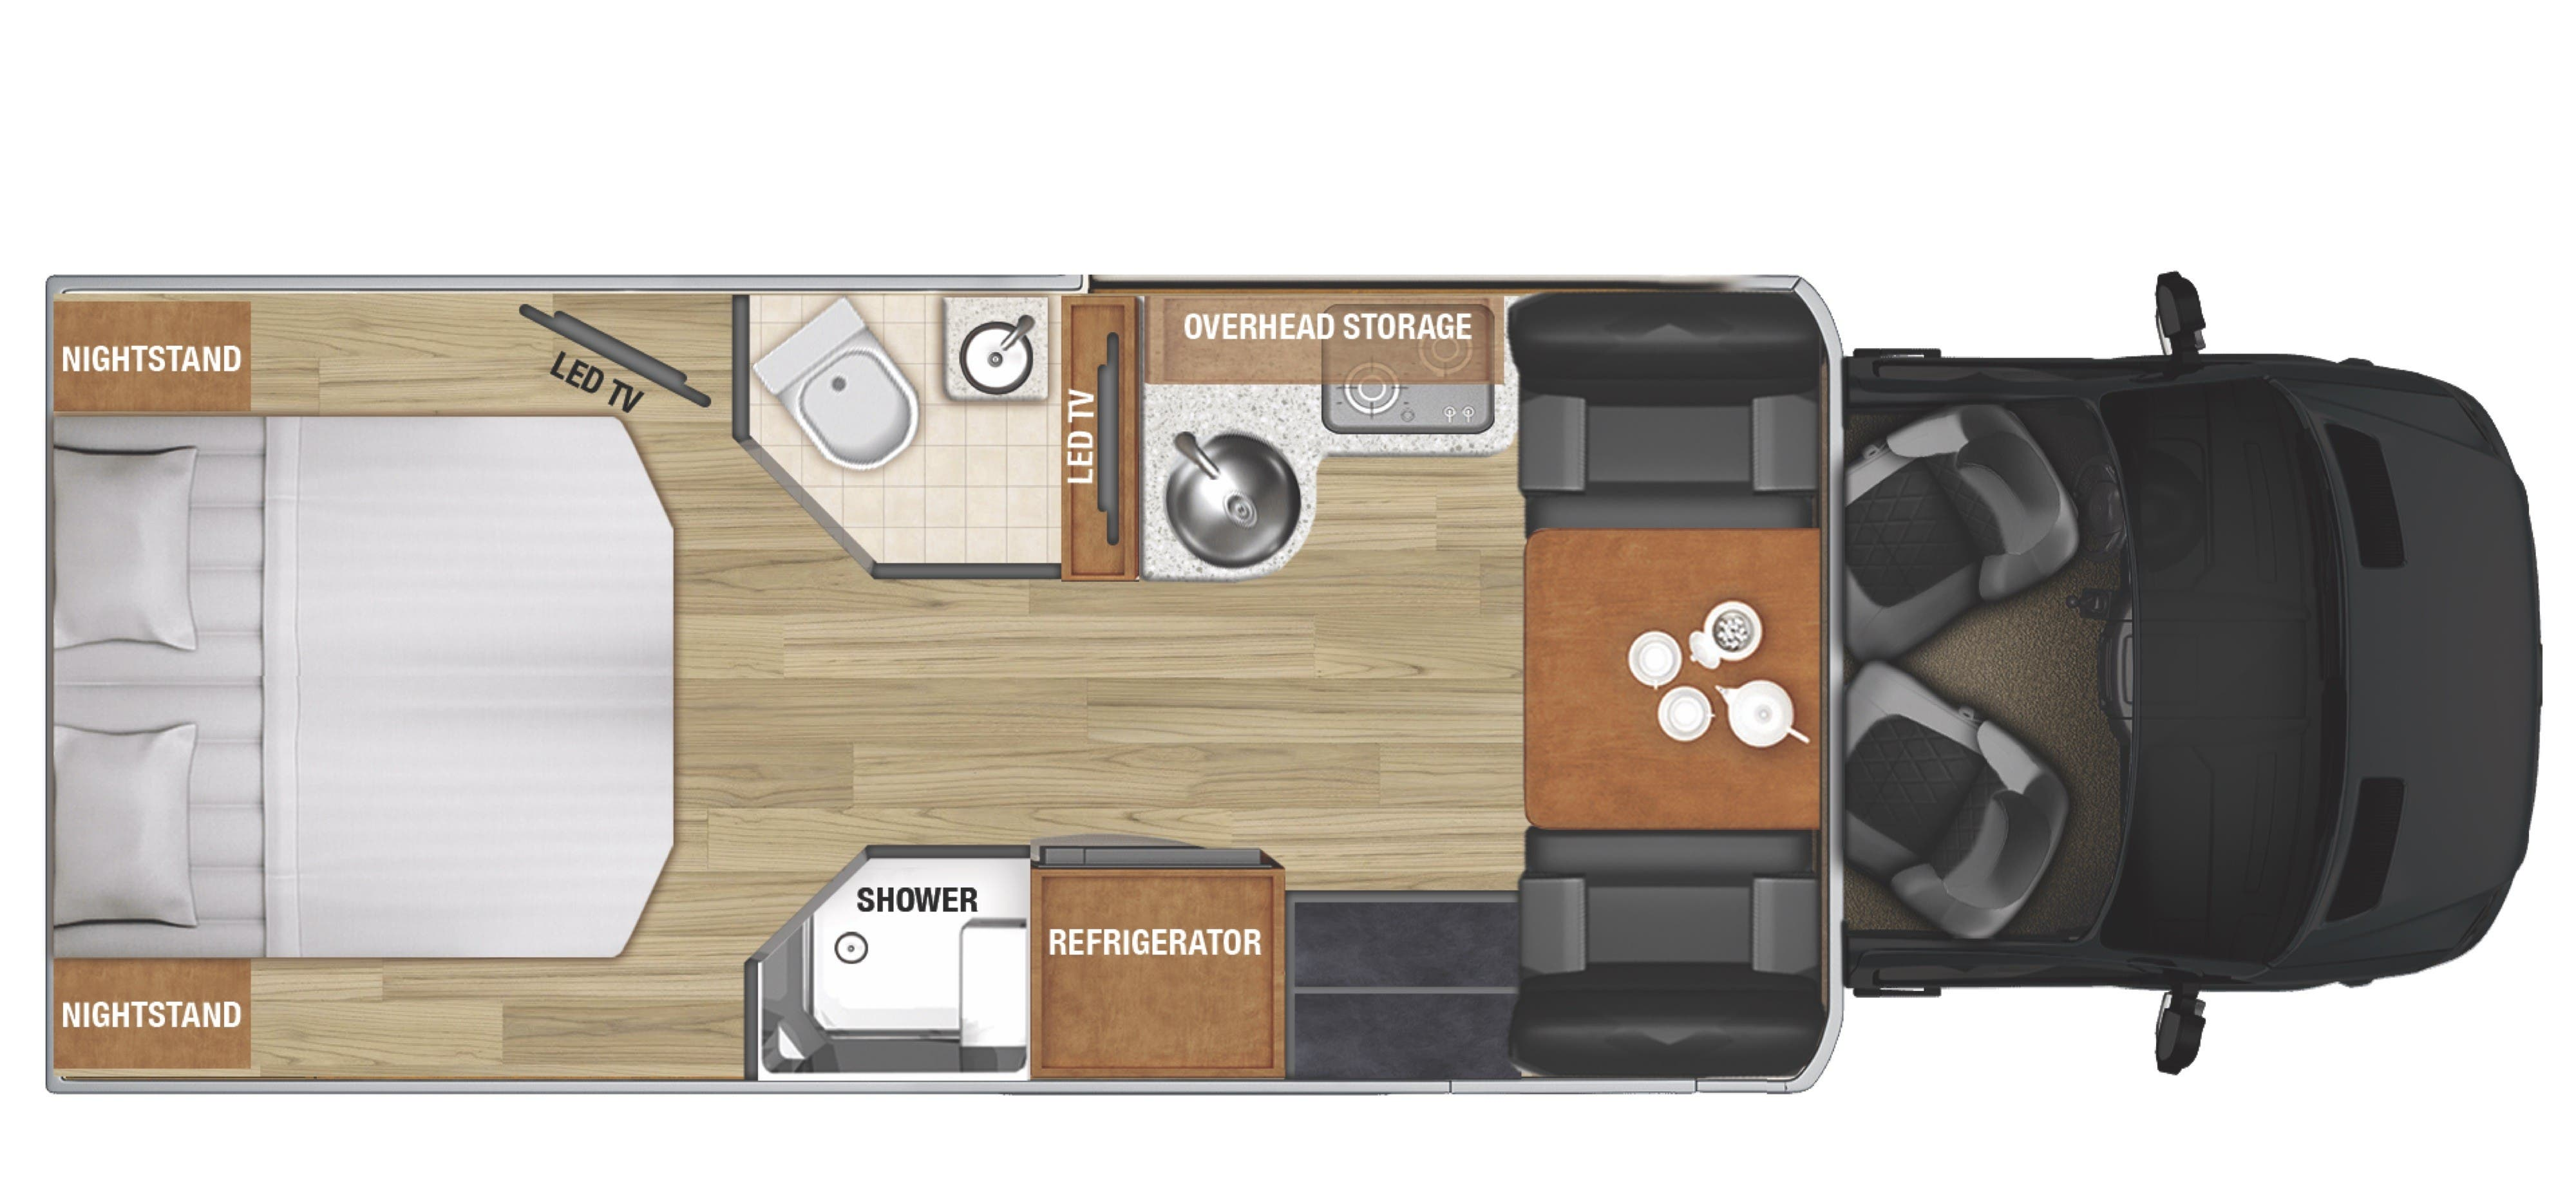 2021_regency_ultra_brougham_floorplan